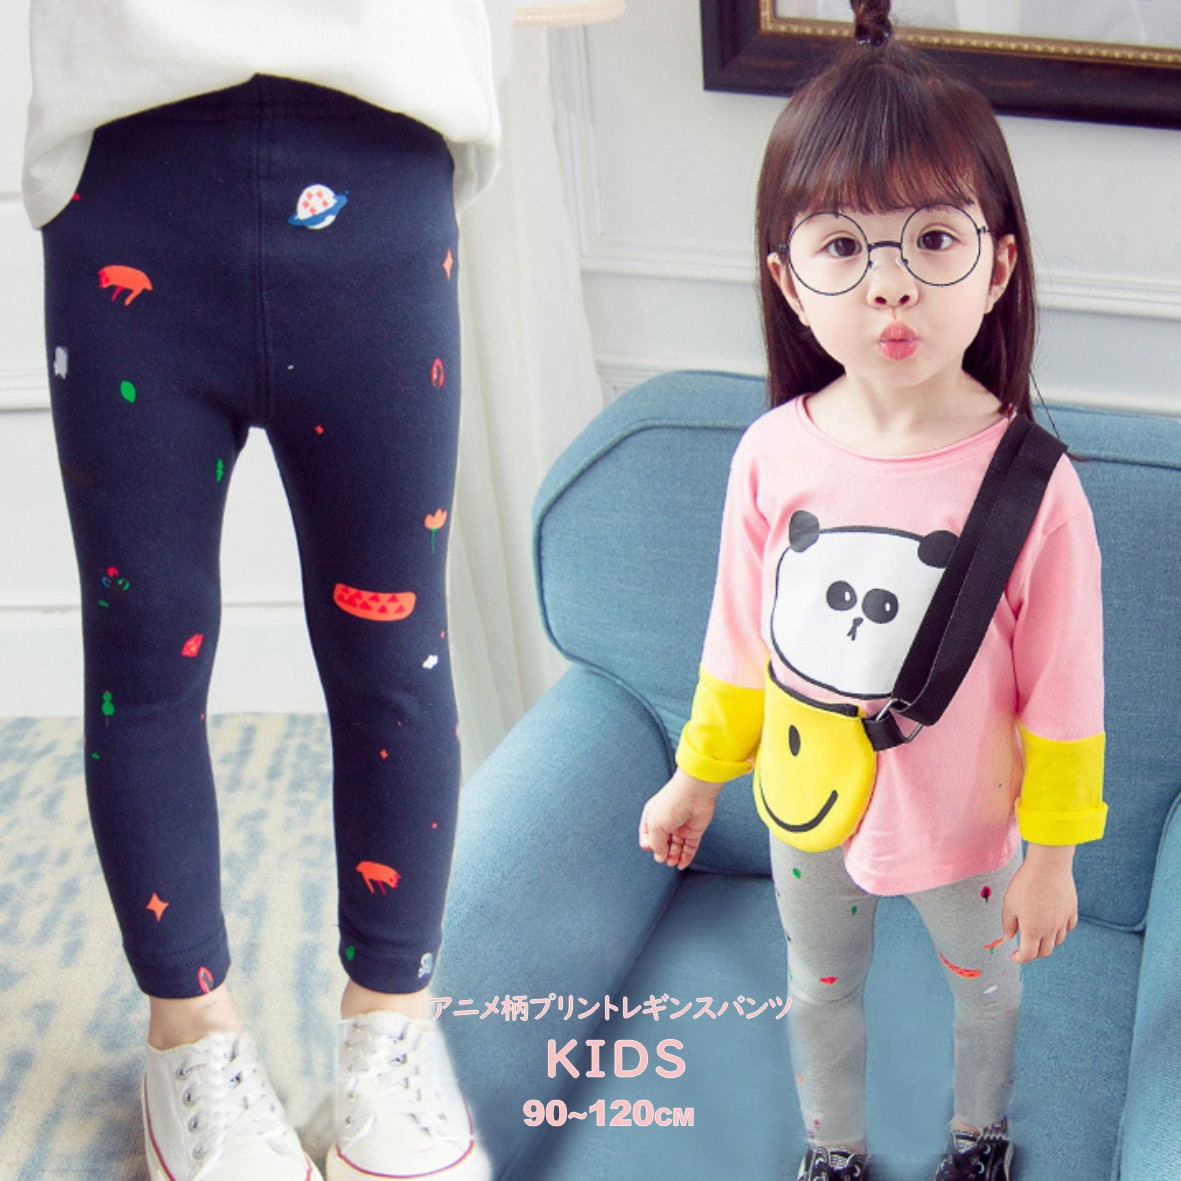 5002fa7af540f Elasticity P000100200060 where the child leggings waist rubber navy dark  blue gray gray of the child child spats woman for the kids leggings child  for ...